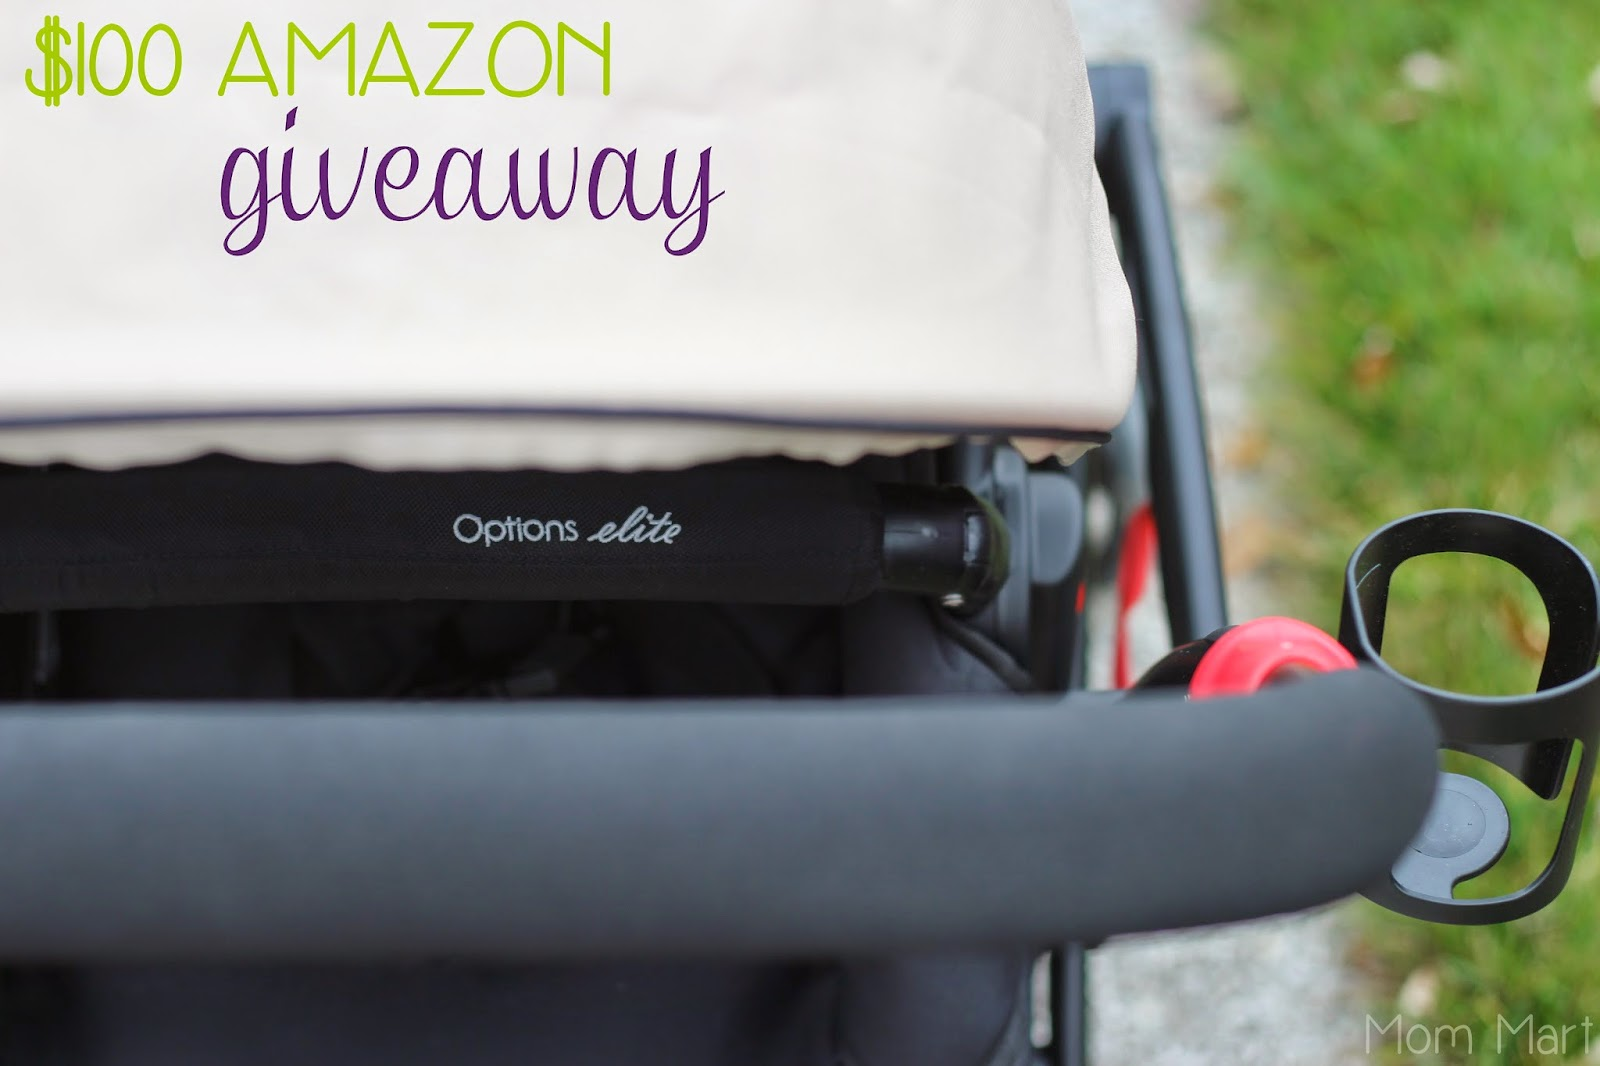 Contours Options Elite $100 Amazon Giveaway